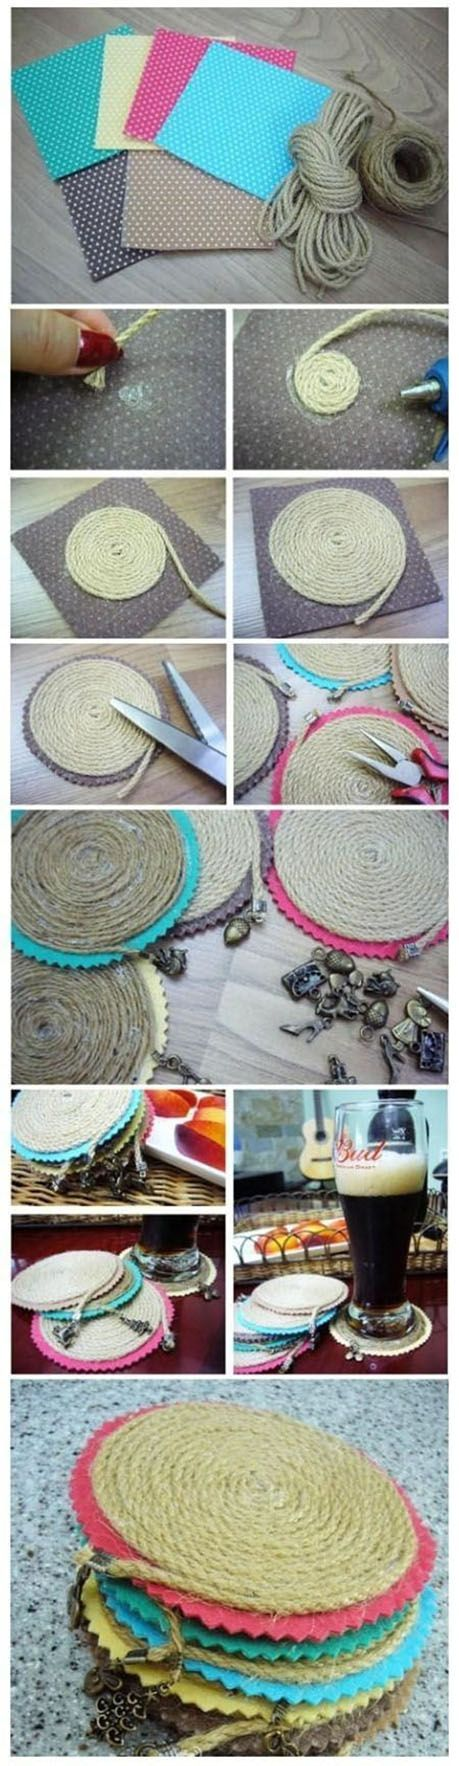 Diy Easy Tablemat | DIY  Crafts Tutorials